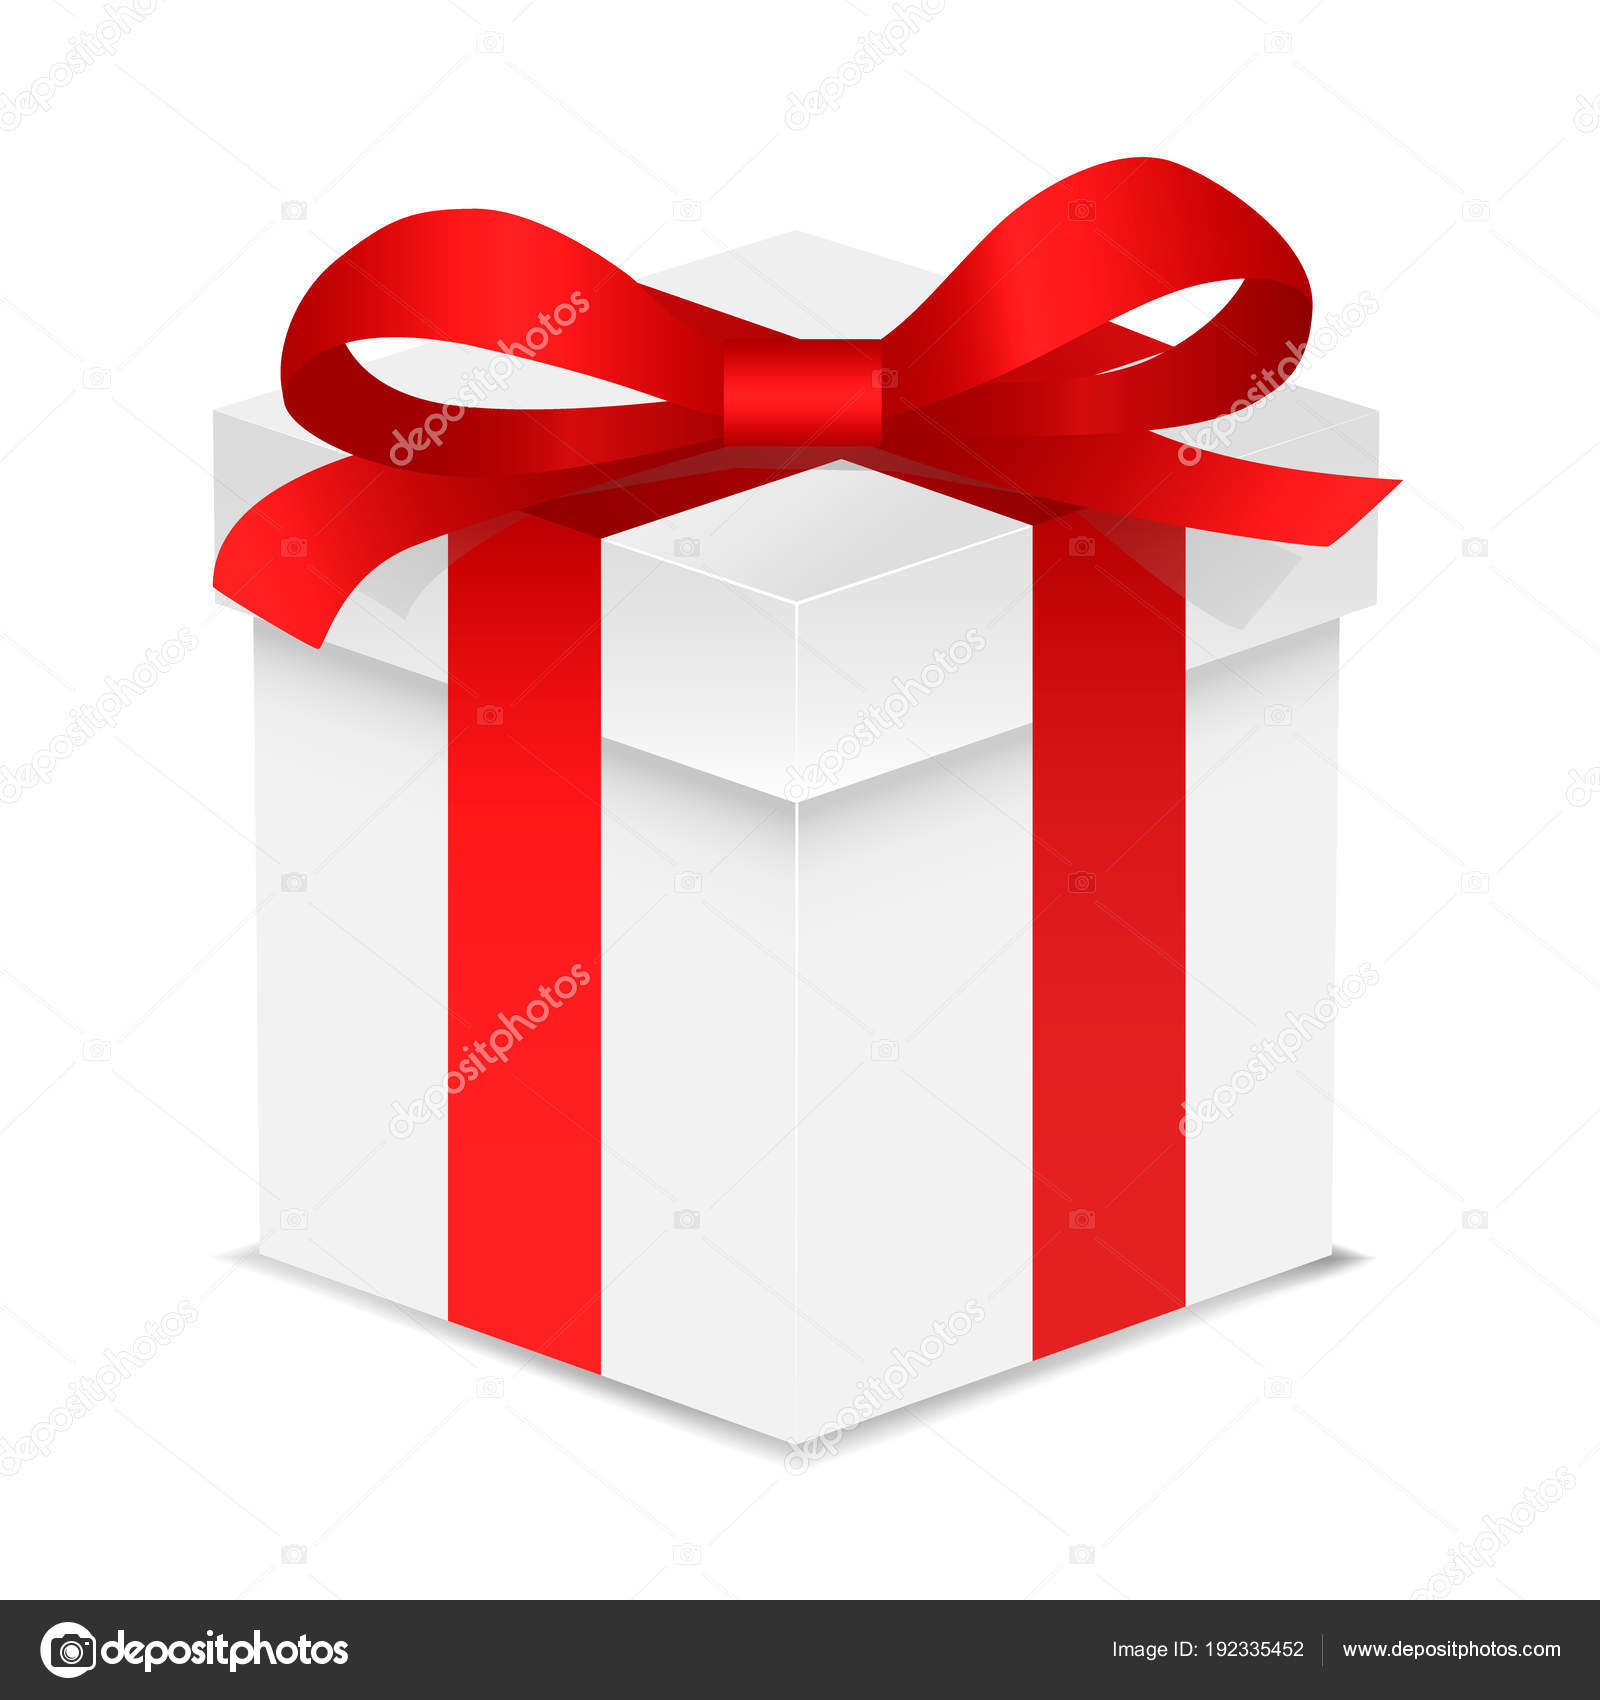 Gift box with red color bow knot and ribbon isolated on white gift box with red color bow knot and ribbon isolated on white background happy birthday negle Gallery